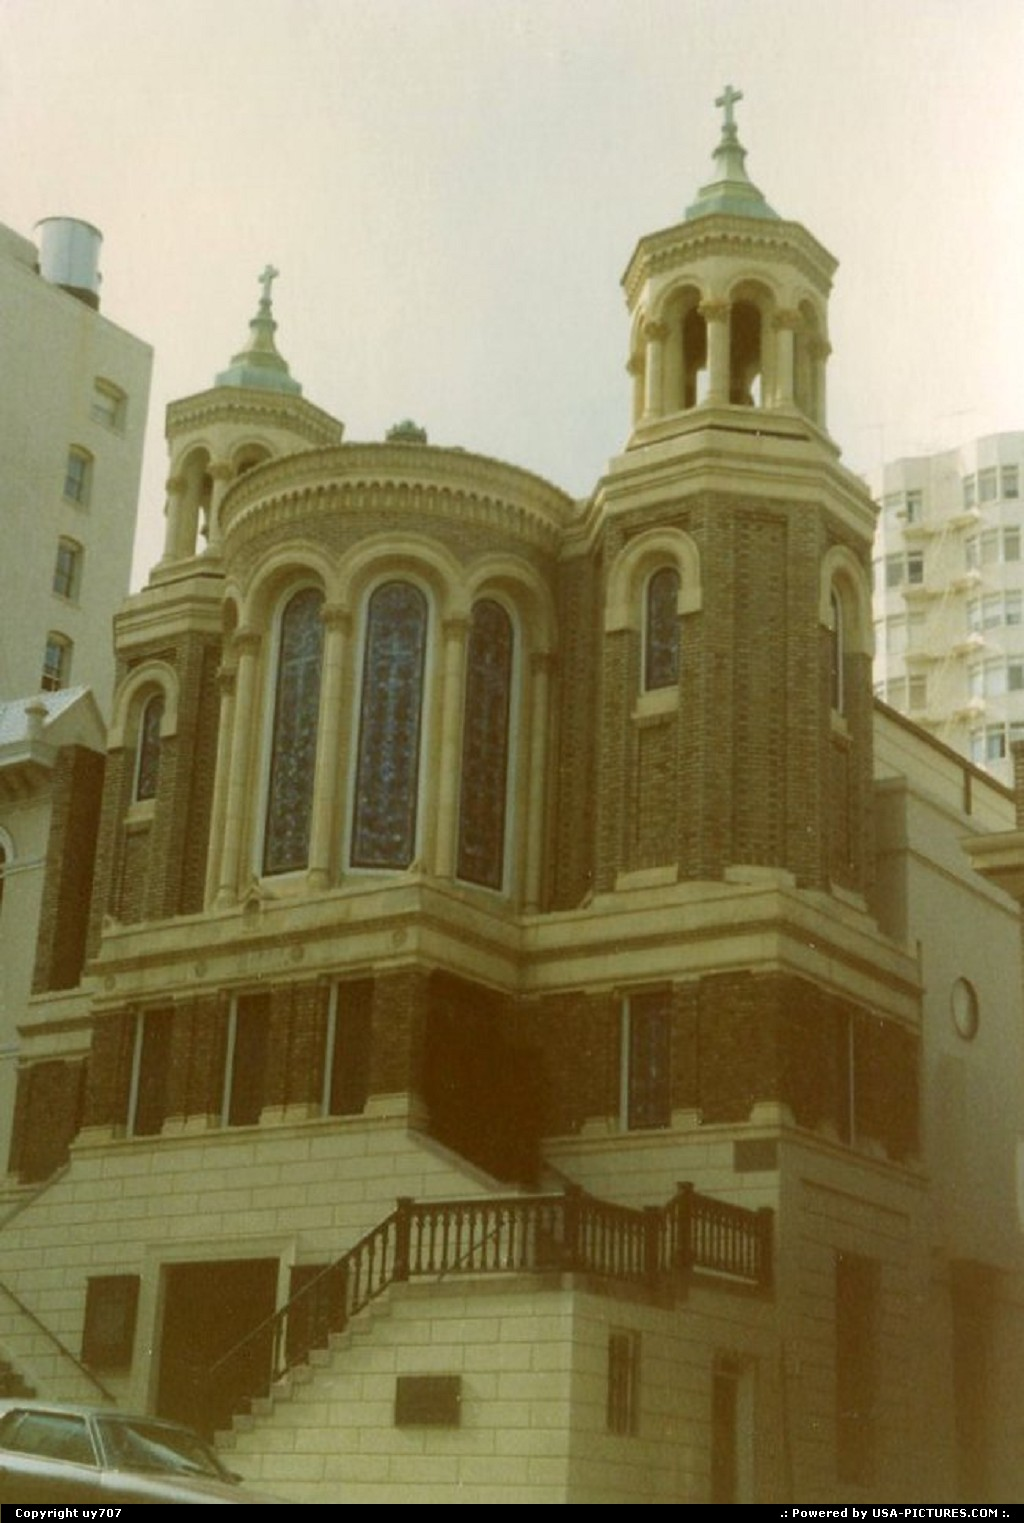 Picture by uy707: San Francisco California